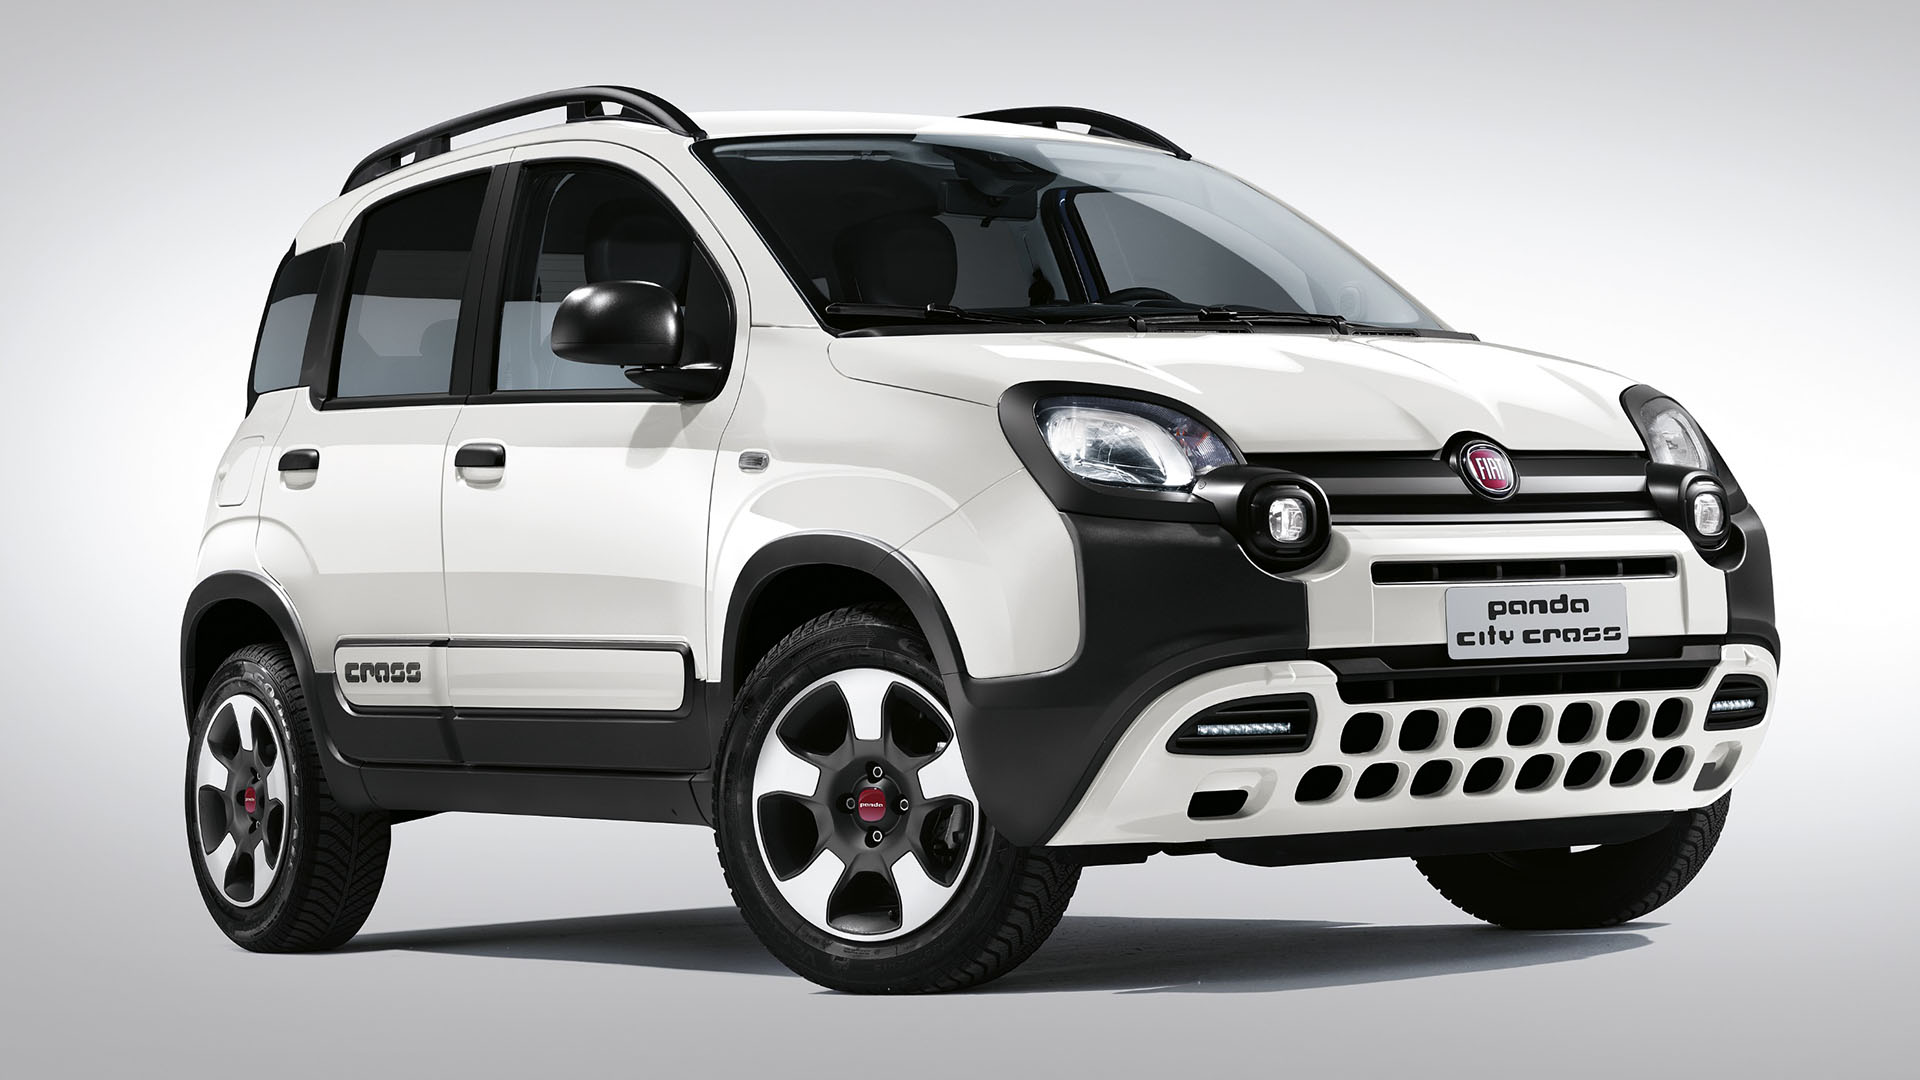 neuer fiat panda city cross neues basismodell. Black Bedroom Furniture Sets. Home Design Ideas